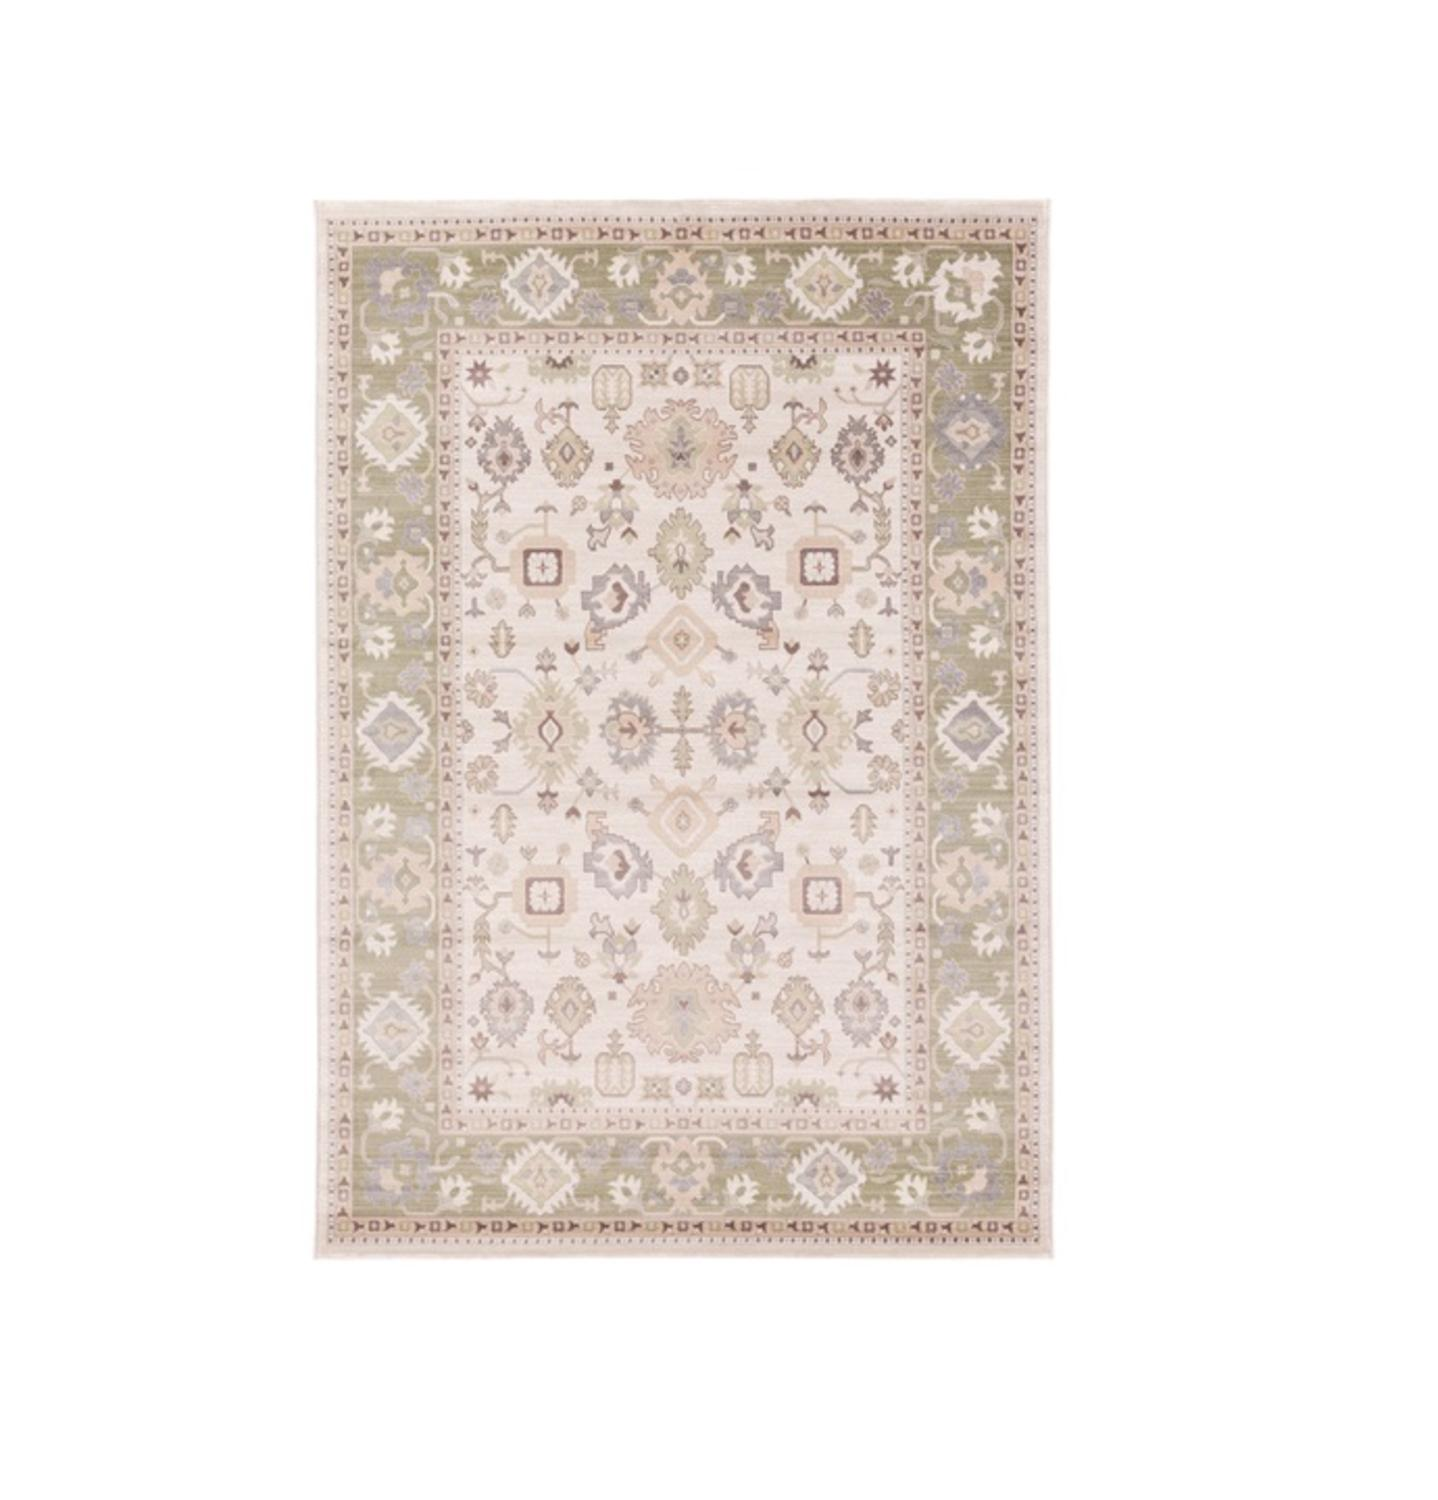 3.75' x 5.15' Noble Hush Oatmeal Brown, Pea Green and Sepia Decorative Area Throw Rug